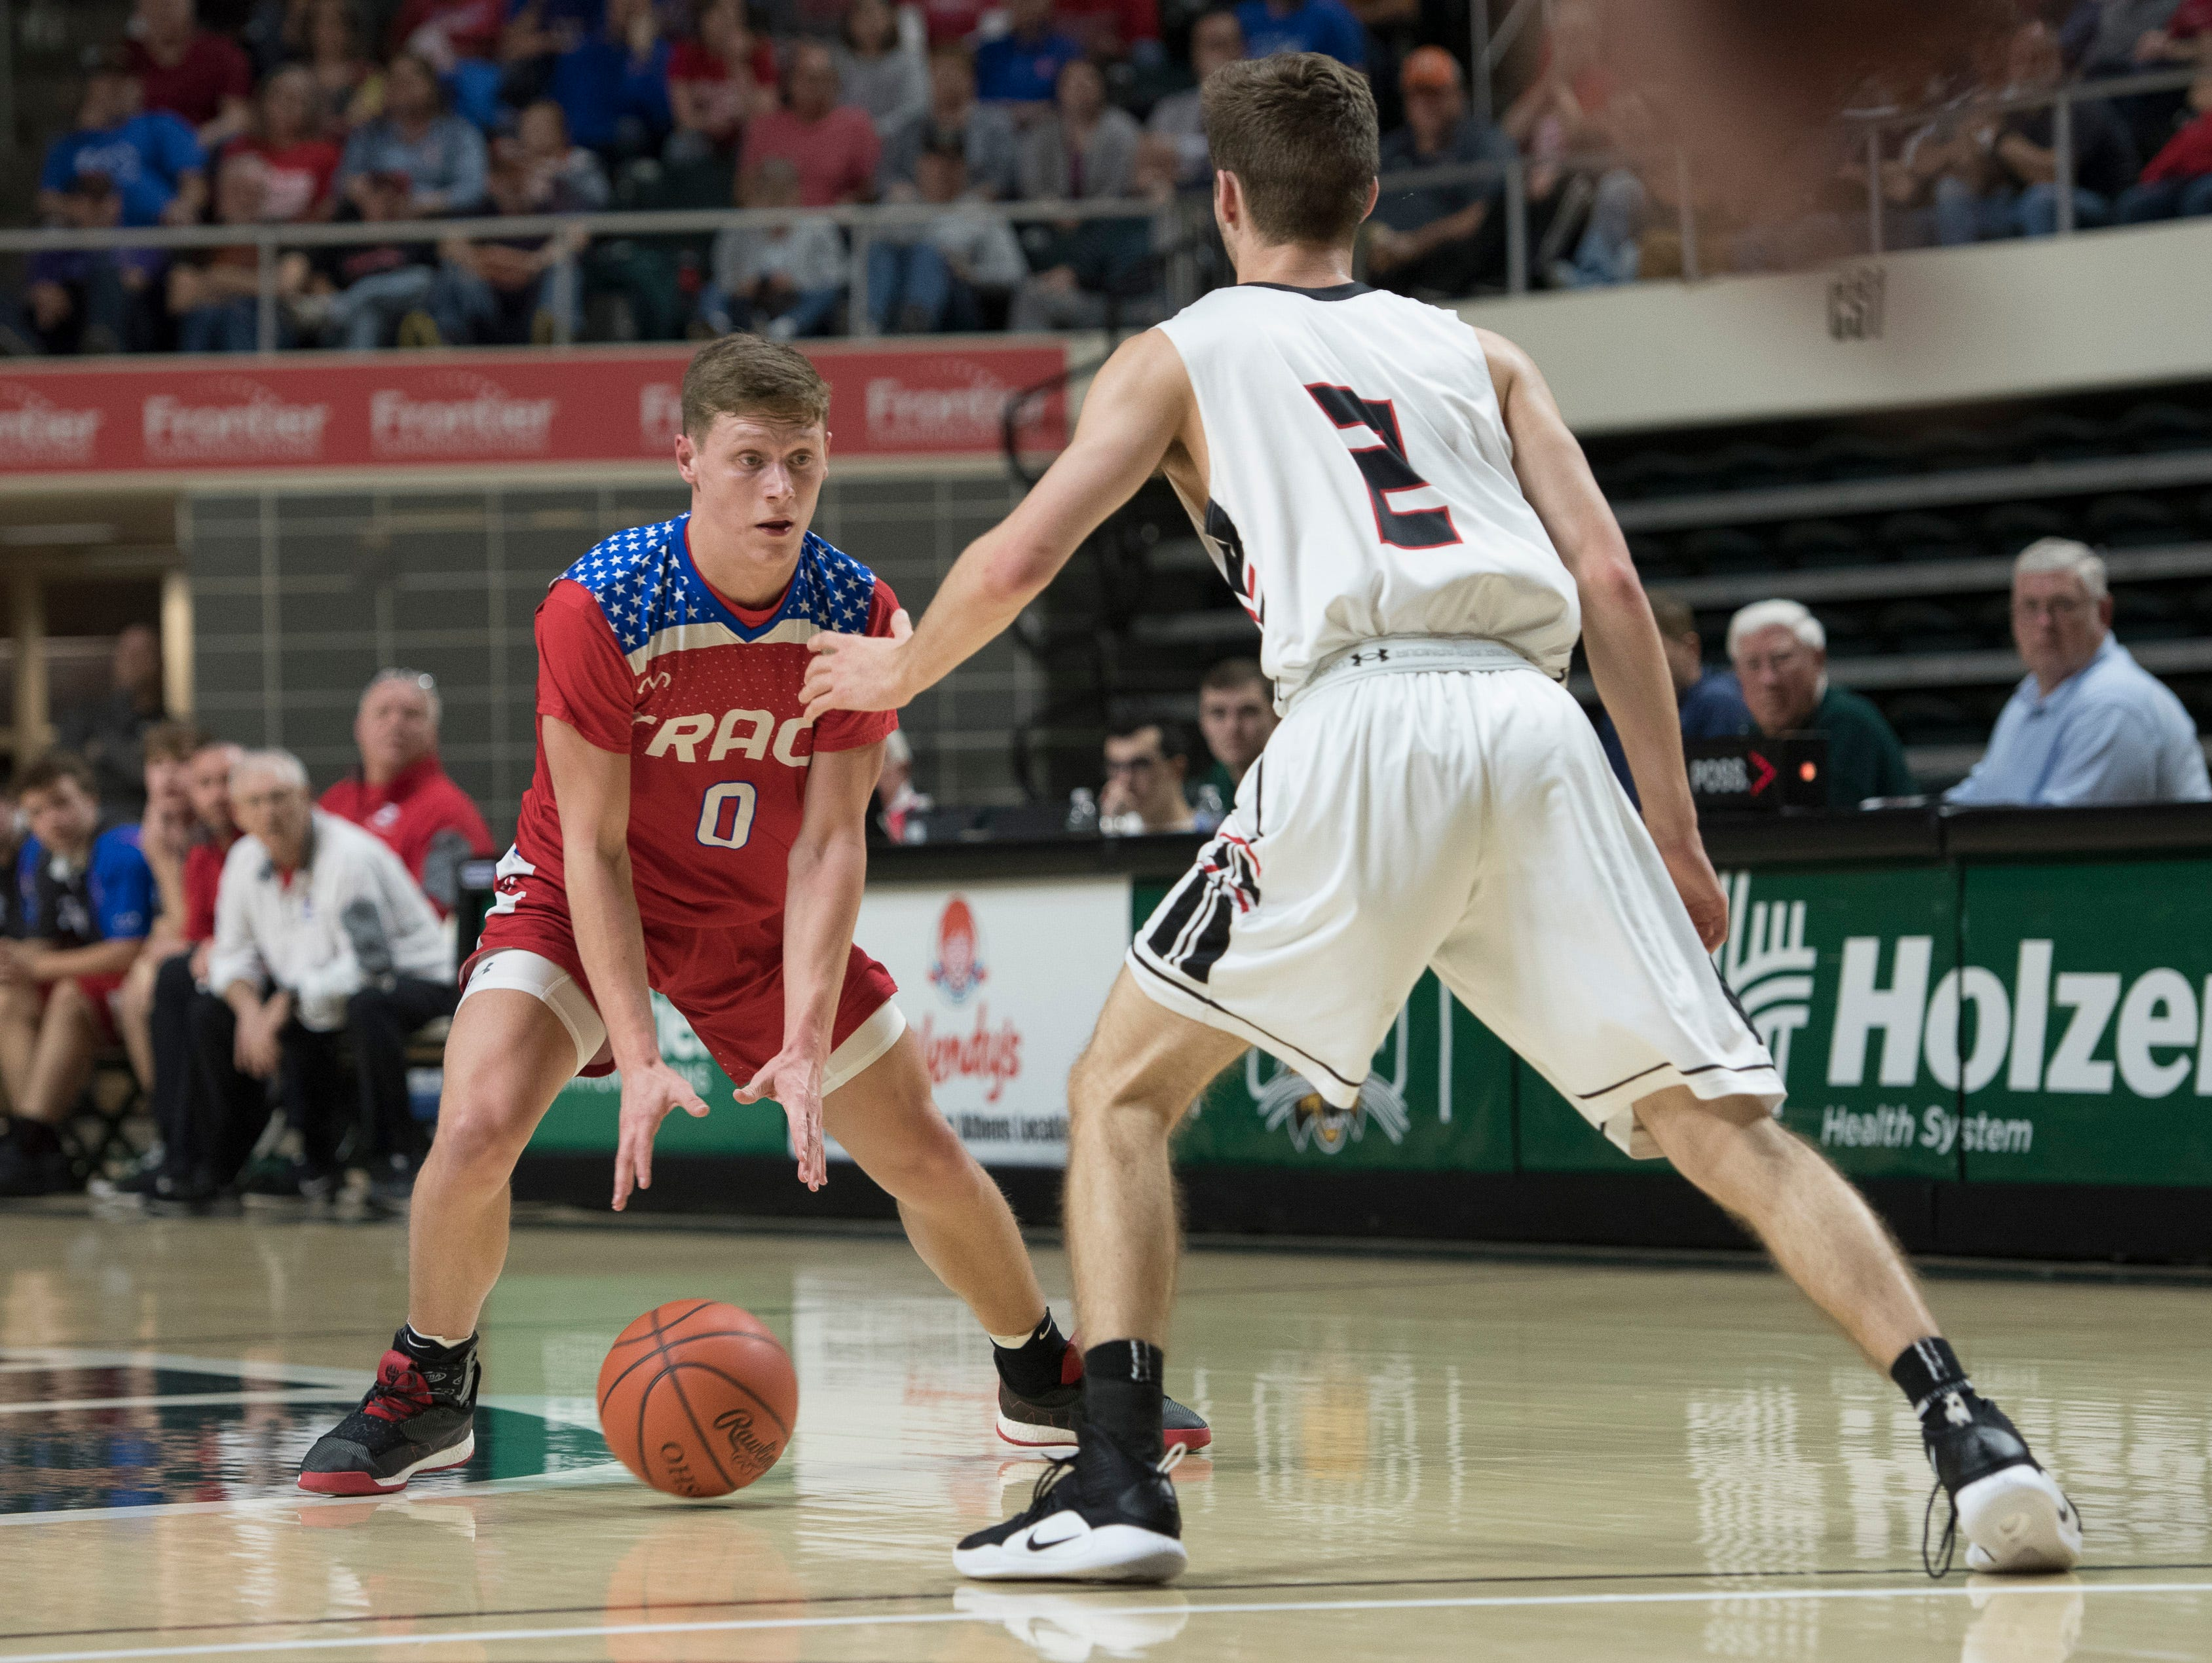 New Philadelphia defeated Zane Trace 50-43 Wednesday night in a Division II regional semifinal game at Ohio University's Convocation Center on March 13, 2019.